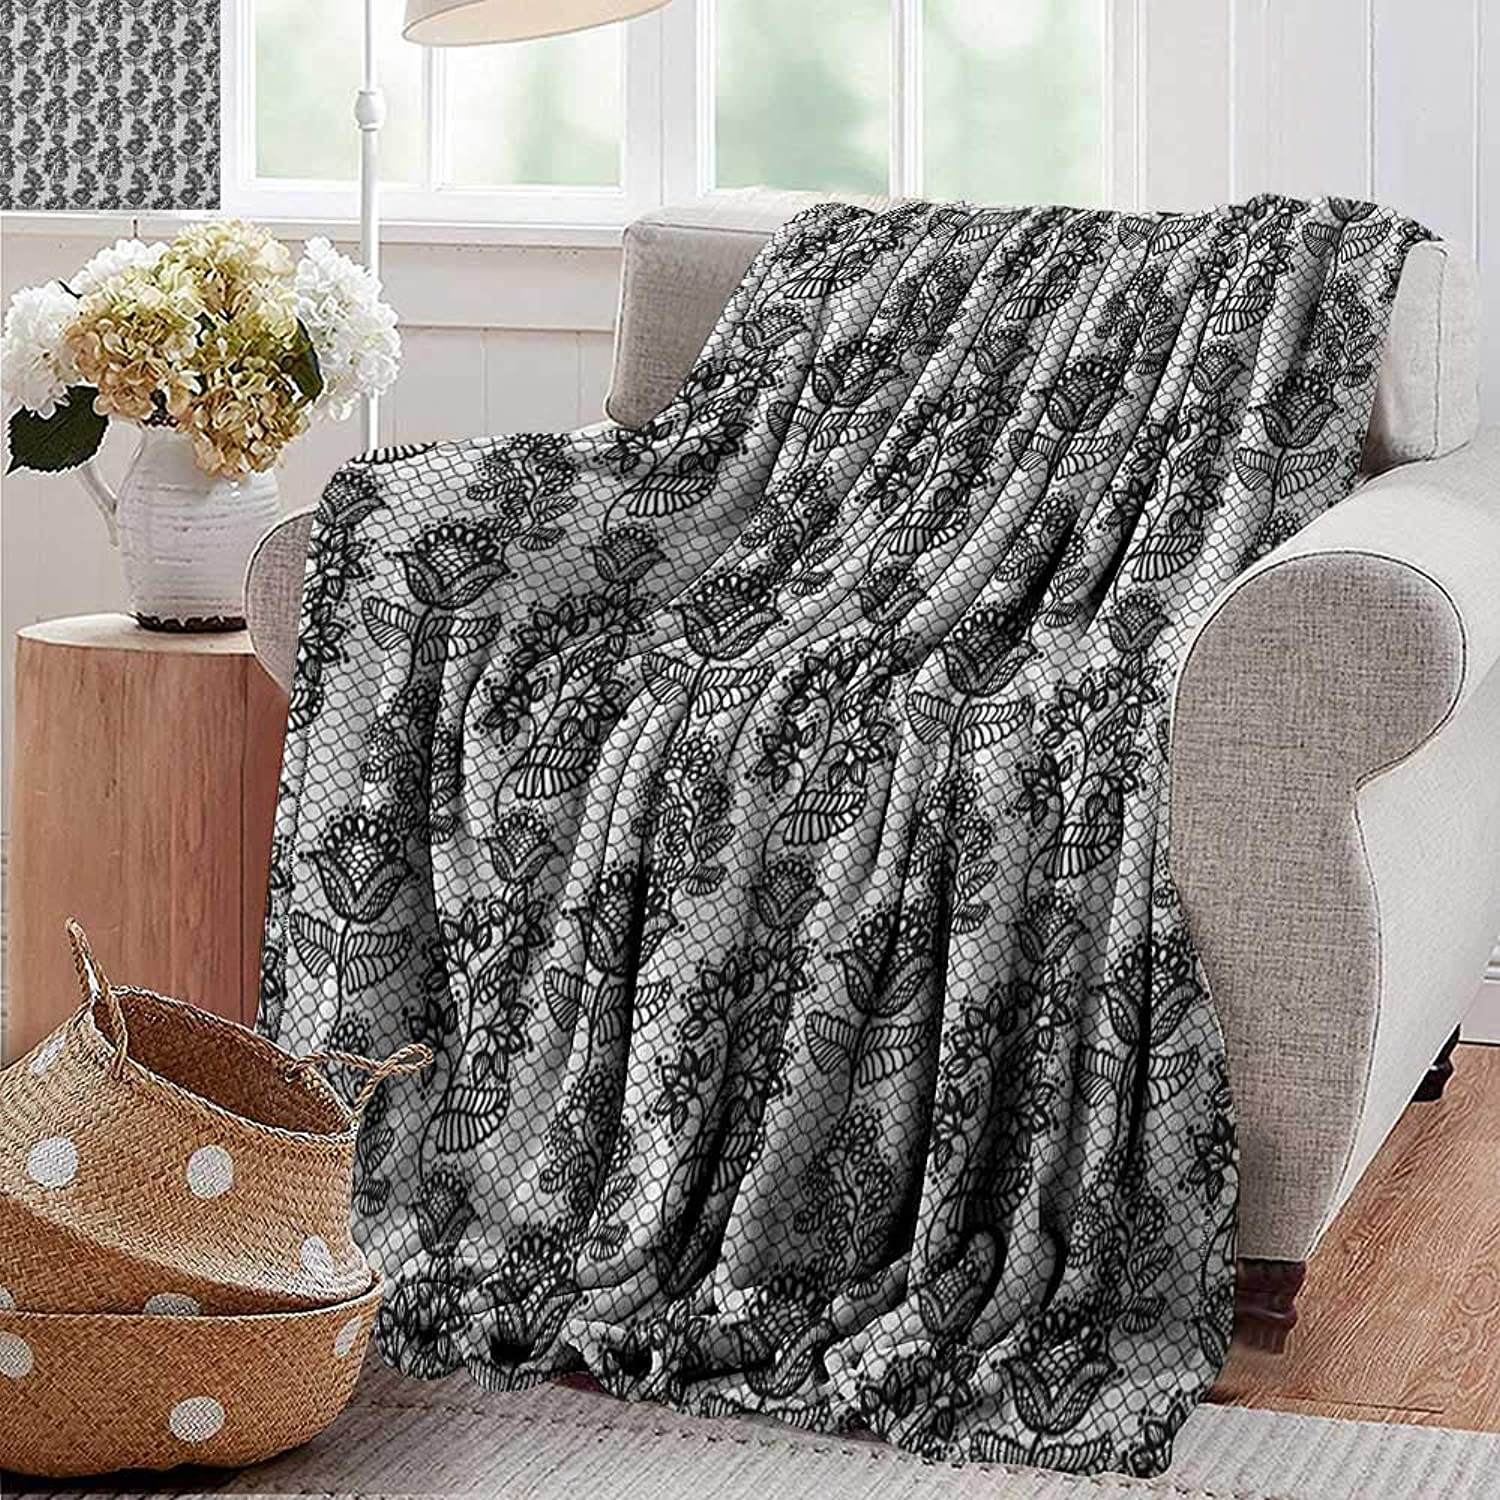 XavieraDoherty Weighted Blanket,Black and White,Lace Style Victorian Flower Motifs on Wavy Backdrop Western Girls Pattern, Black White,300GSM, Super Soft and Warm, Durable 50 x70